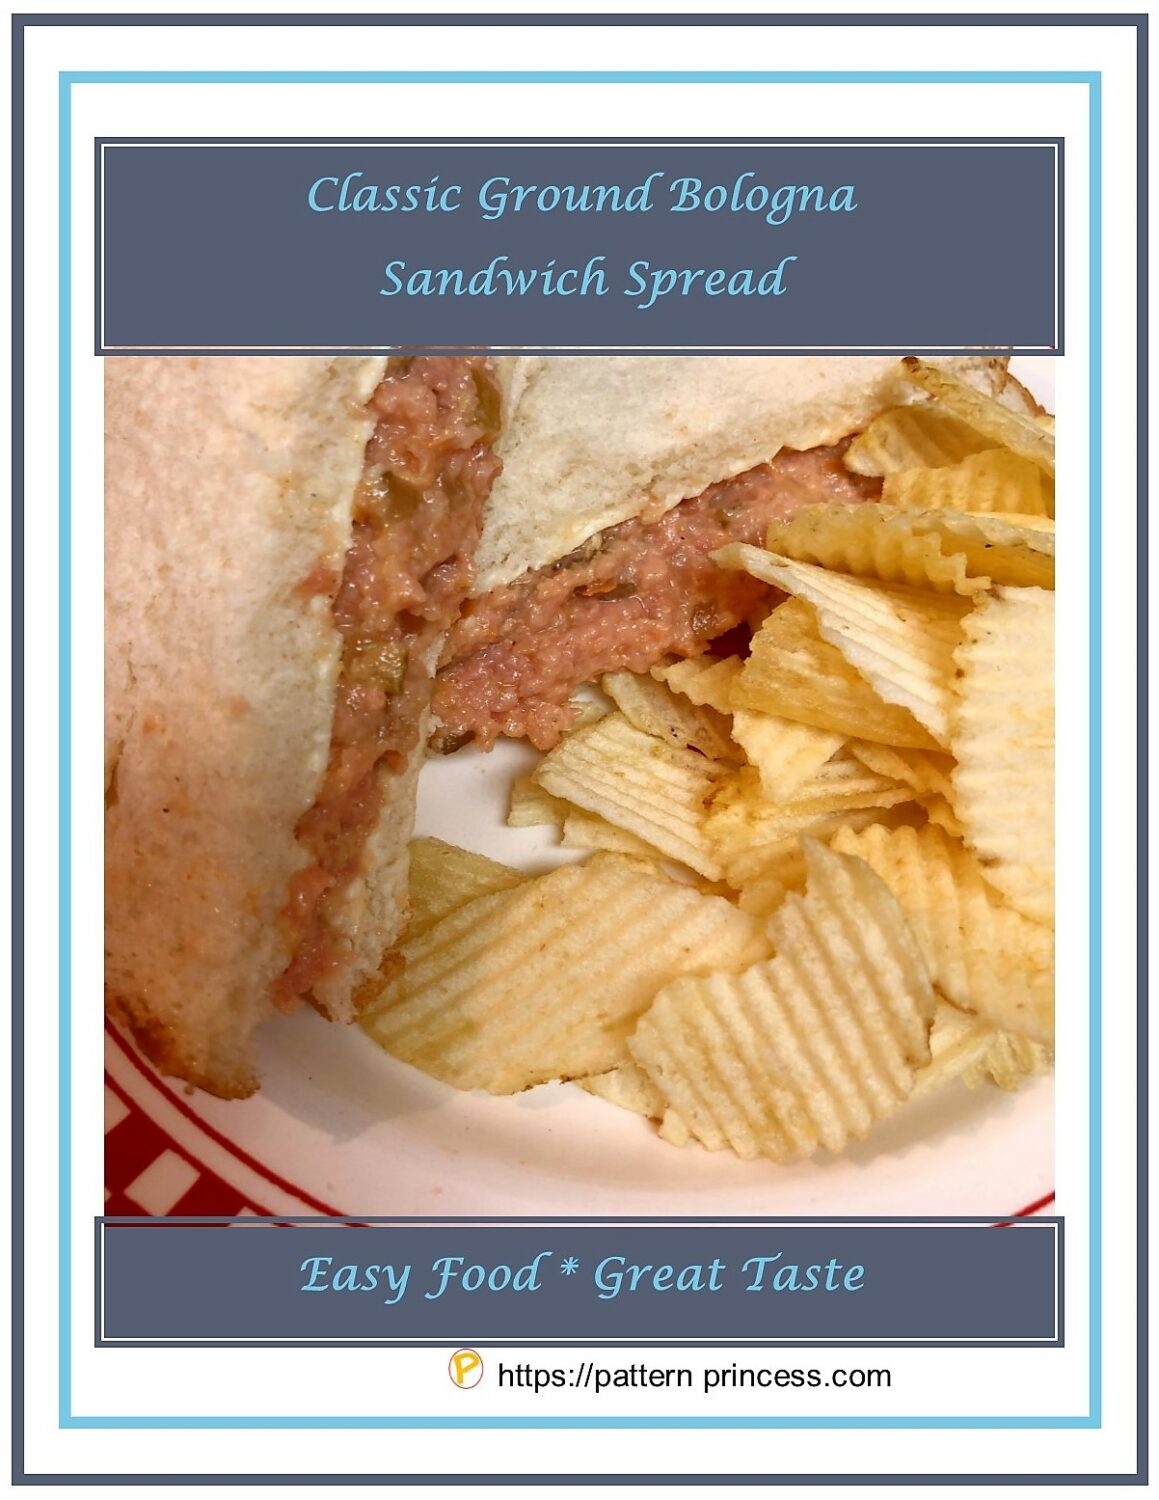 Classic Ground Bologna Sandwich Spread 1